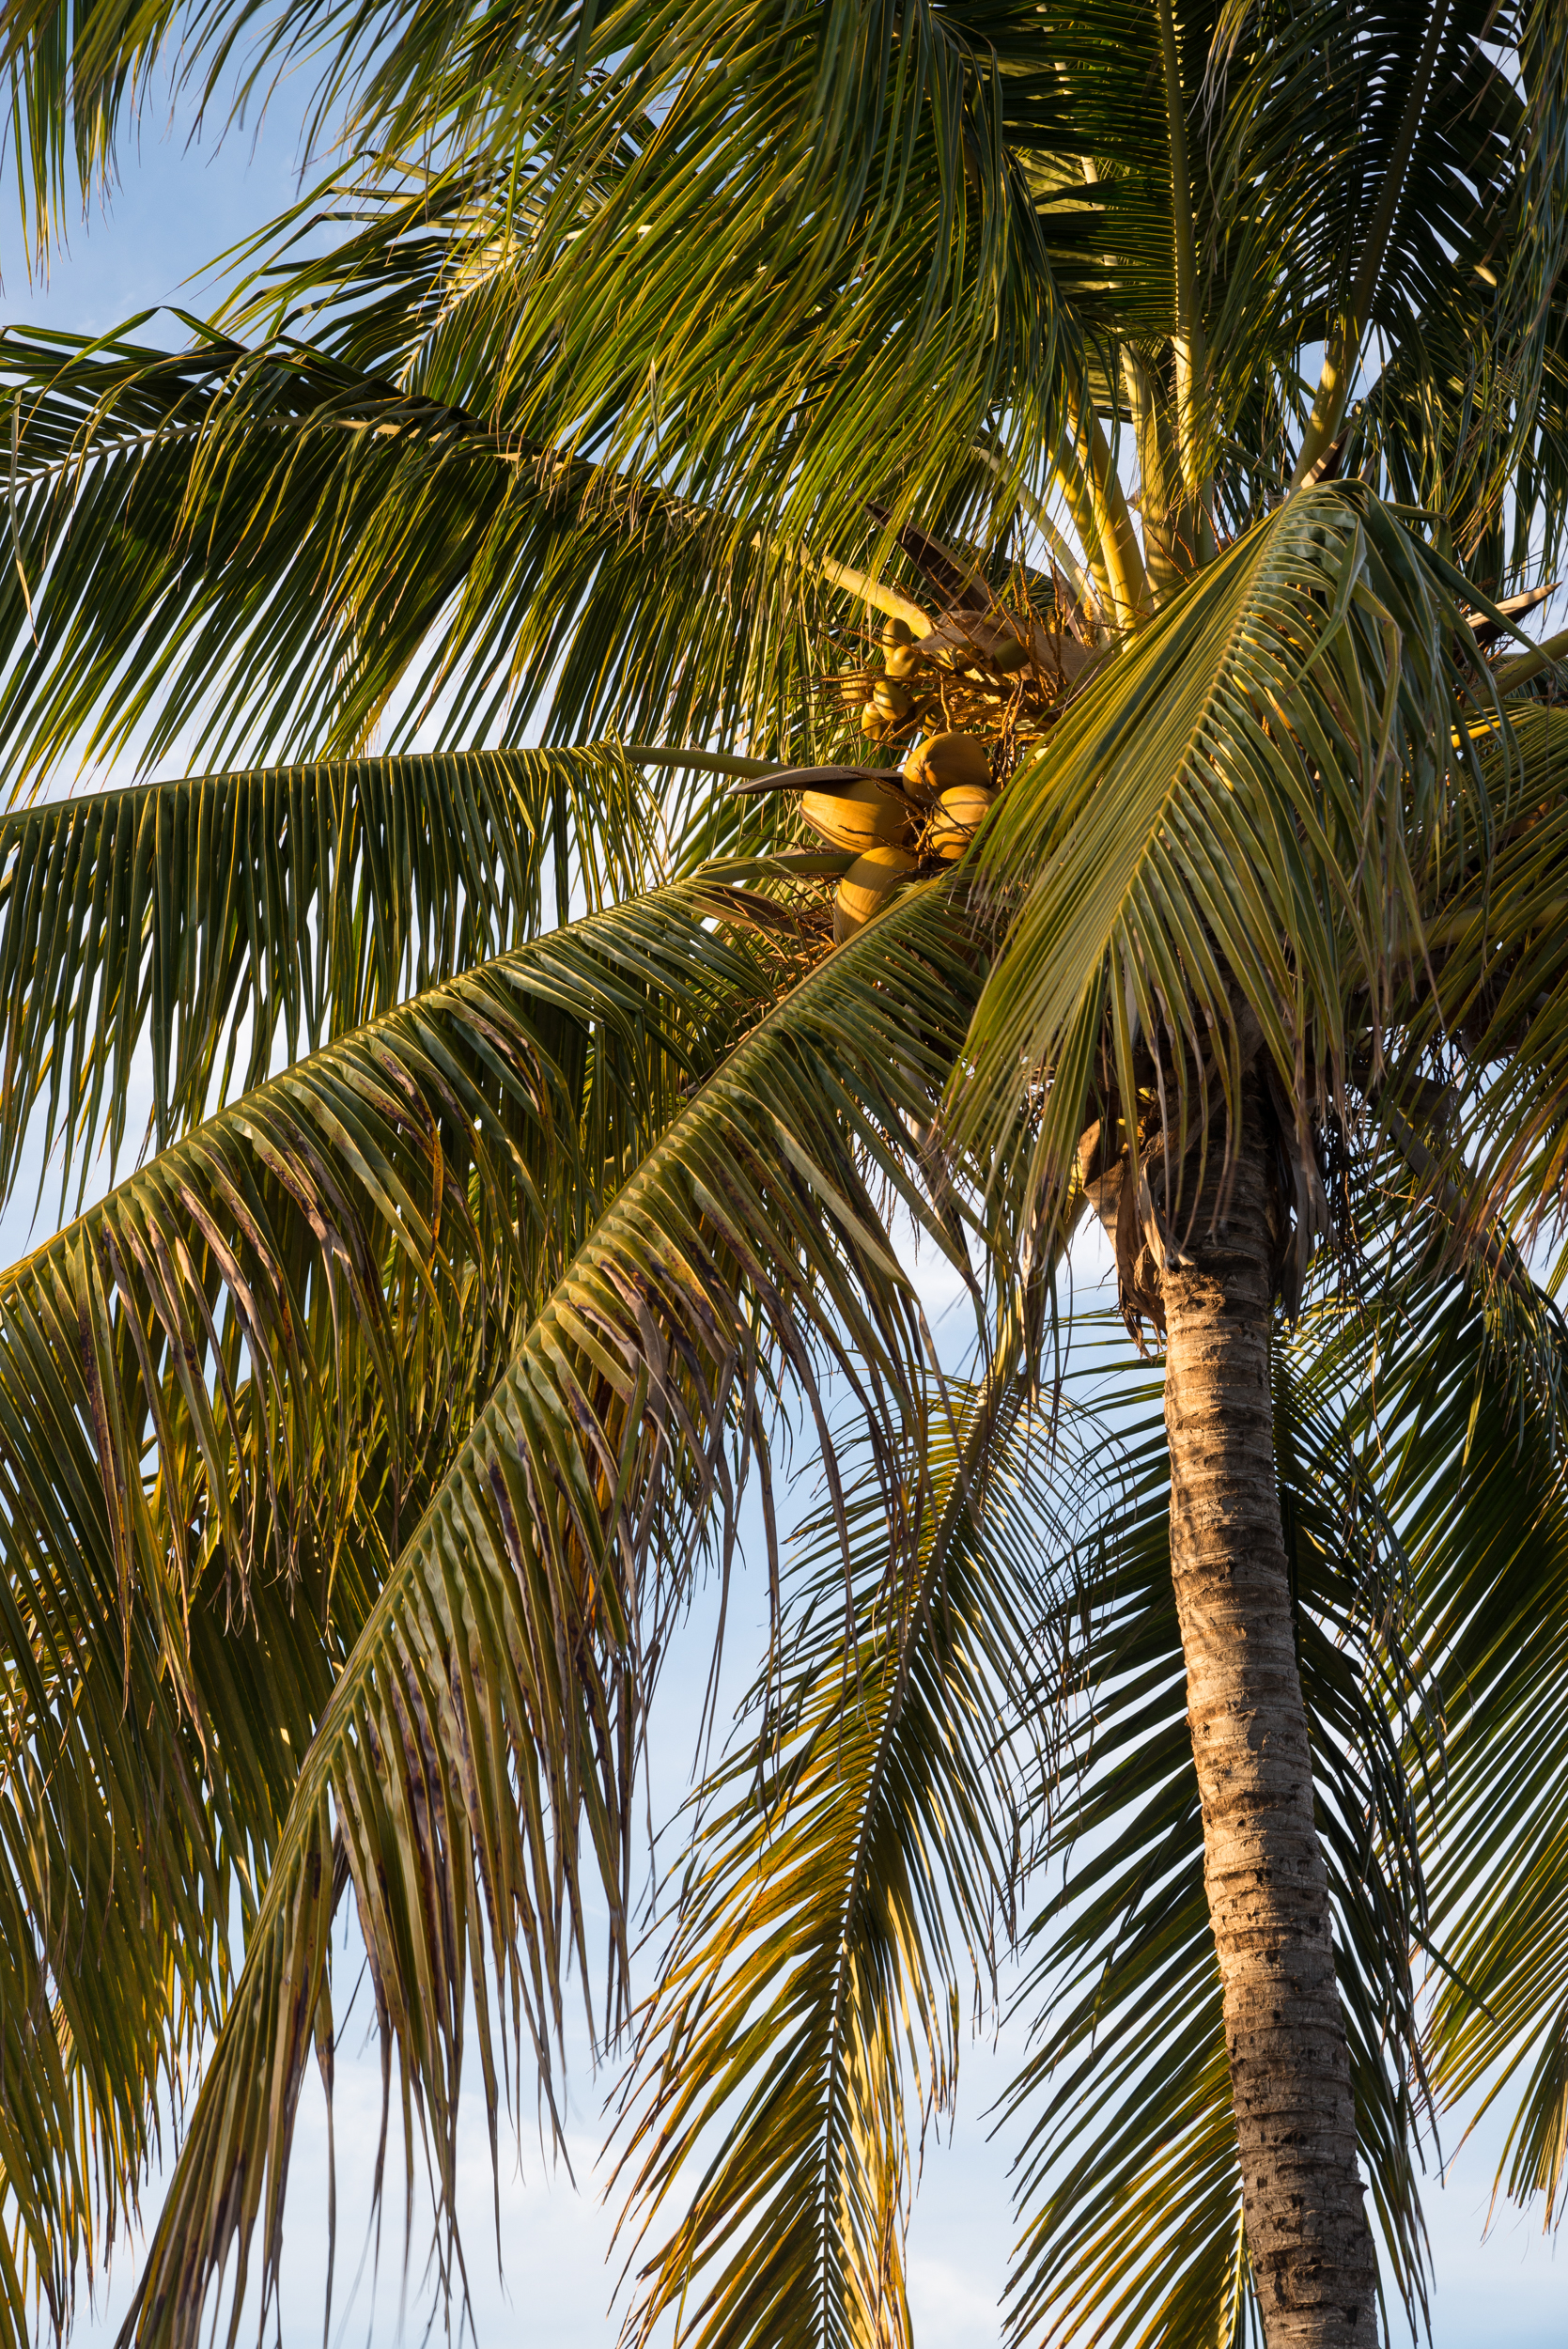 Cocos nucifera - Coconut Tree